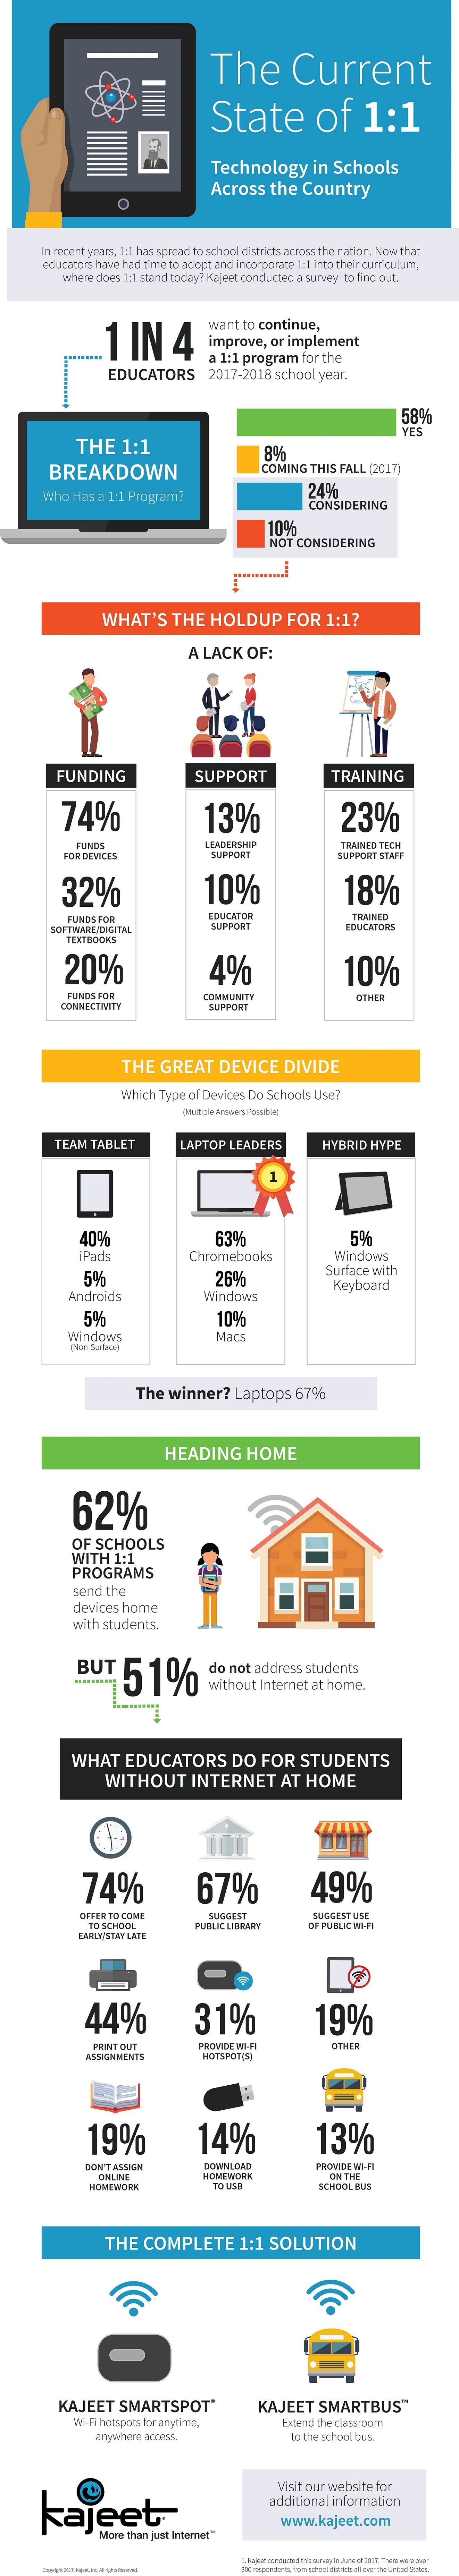 Technology in Schools Across the Country Infographic